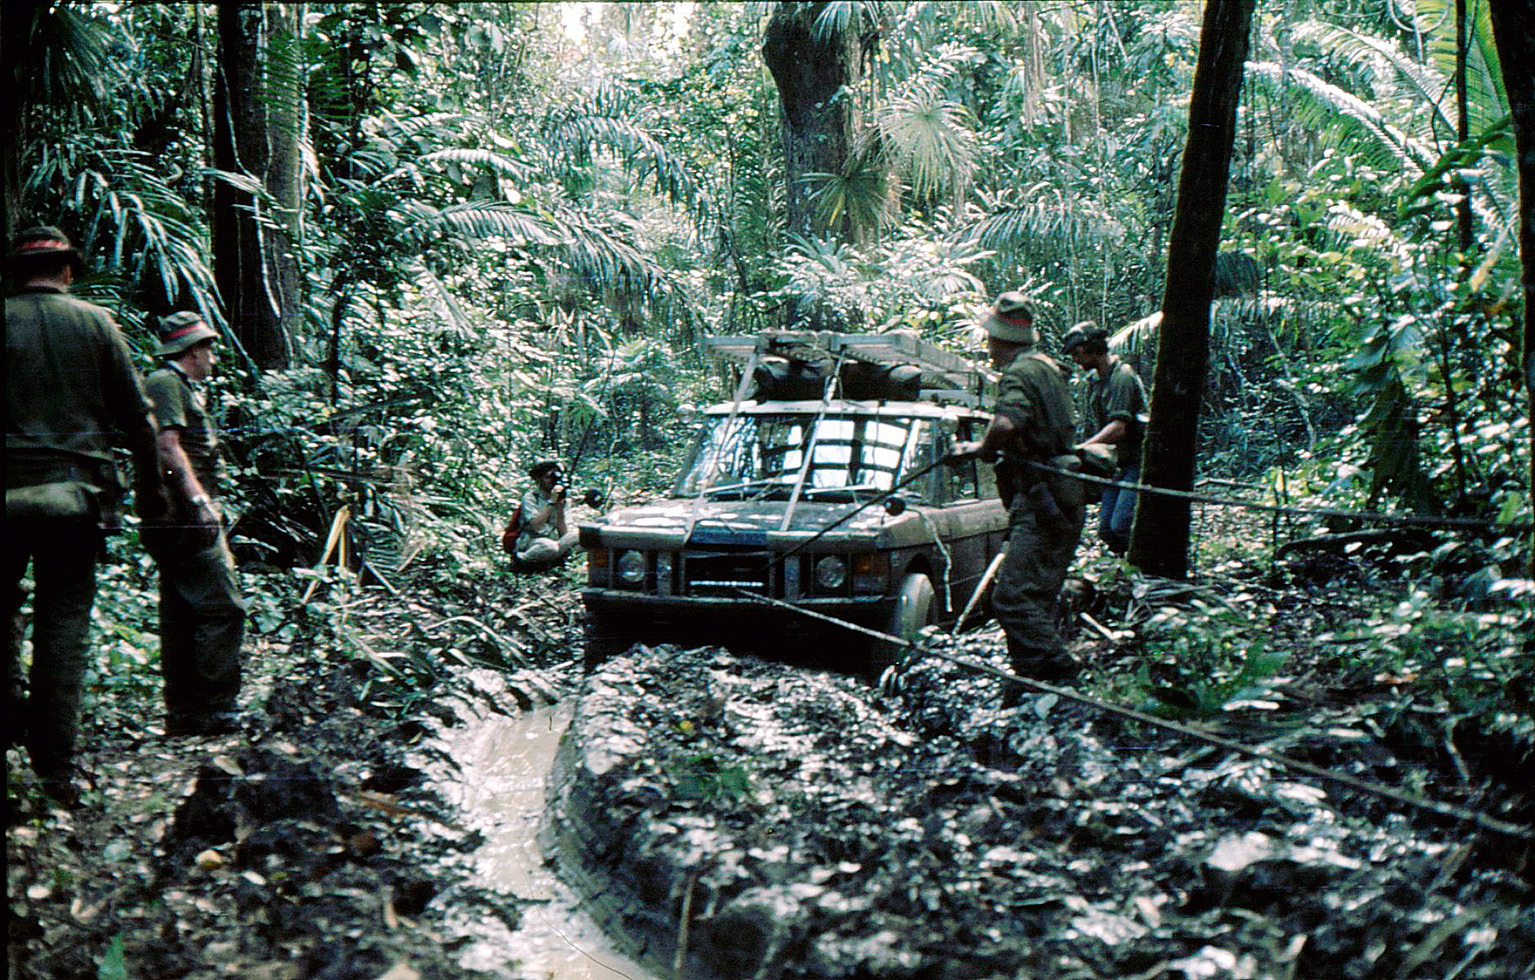 1972 land rover range rover darien gap jungle mud